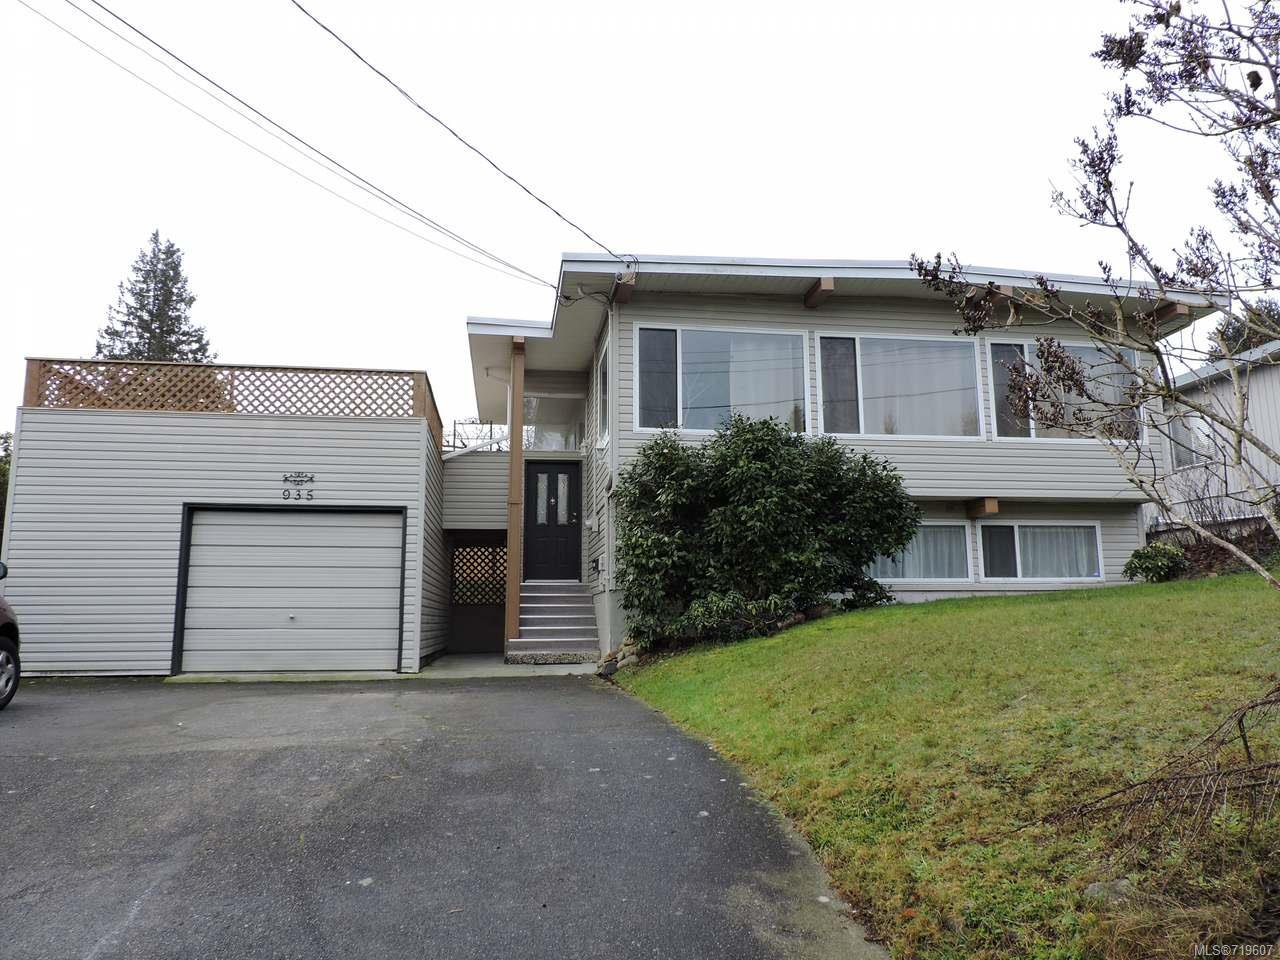 Photo 2: Photos: 935 Beach Dr in NANAIMO: Na Departure Bay House for sale (Nanaimo)  : MLS®# 719607